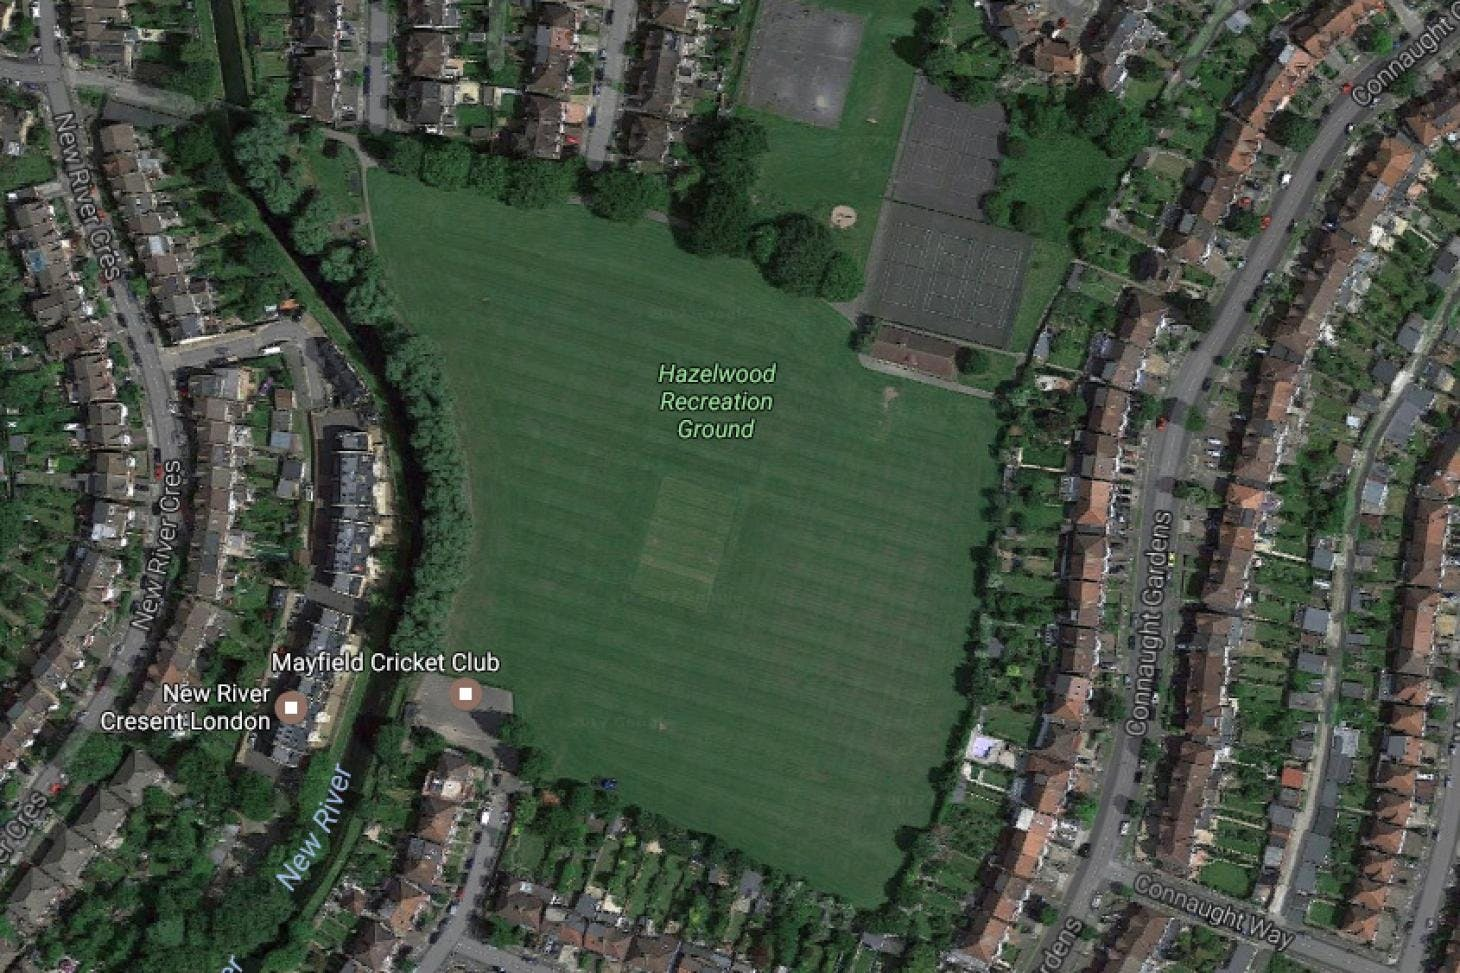 Hazelwood Recreation Ground 11 a side | Grass football pitch